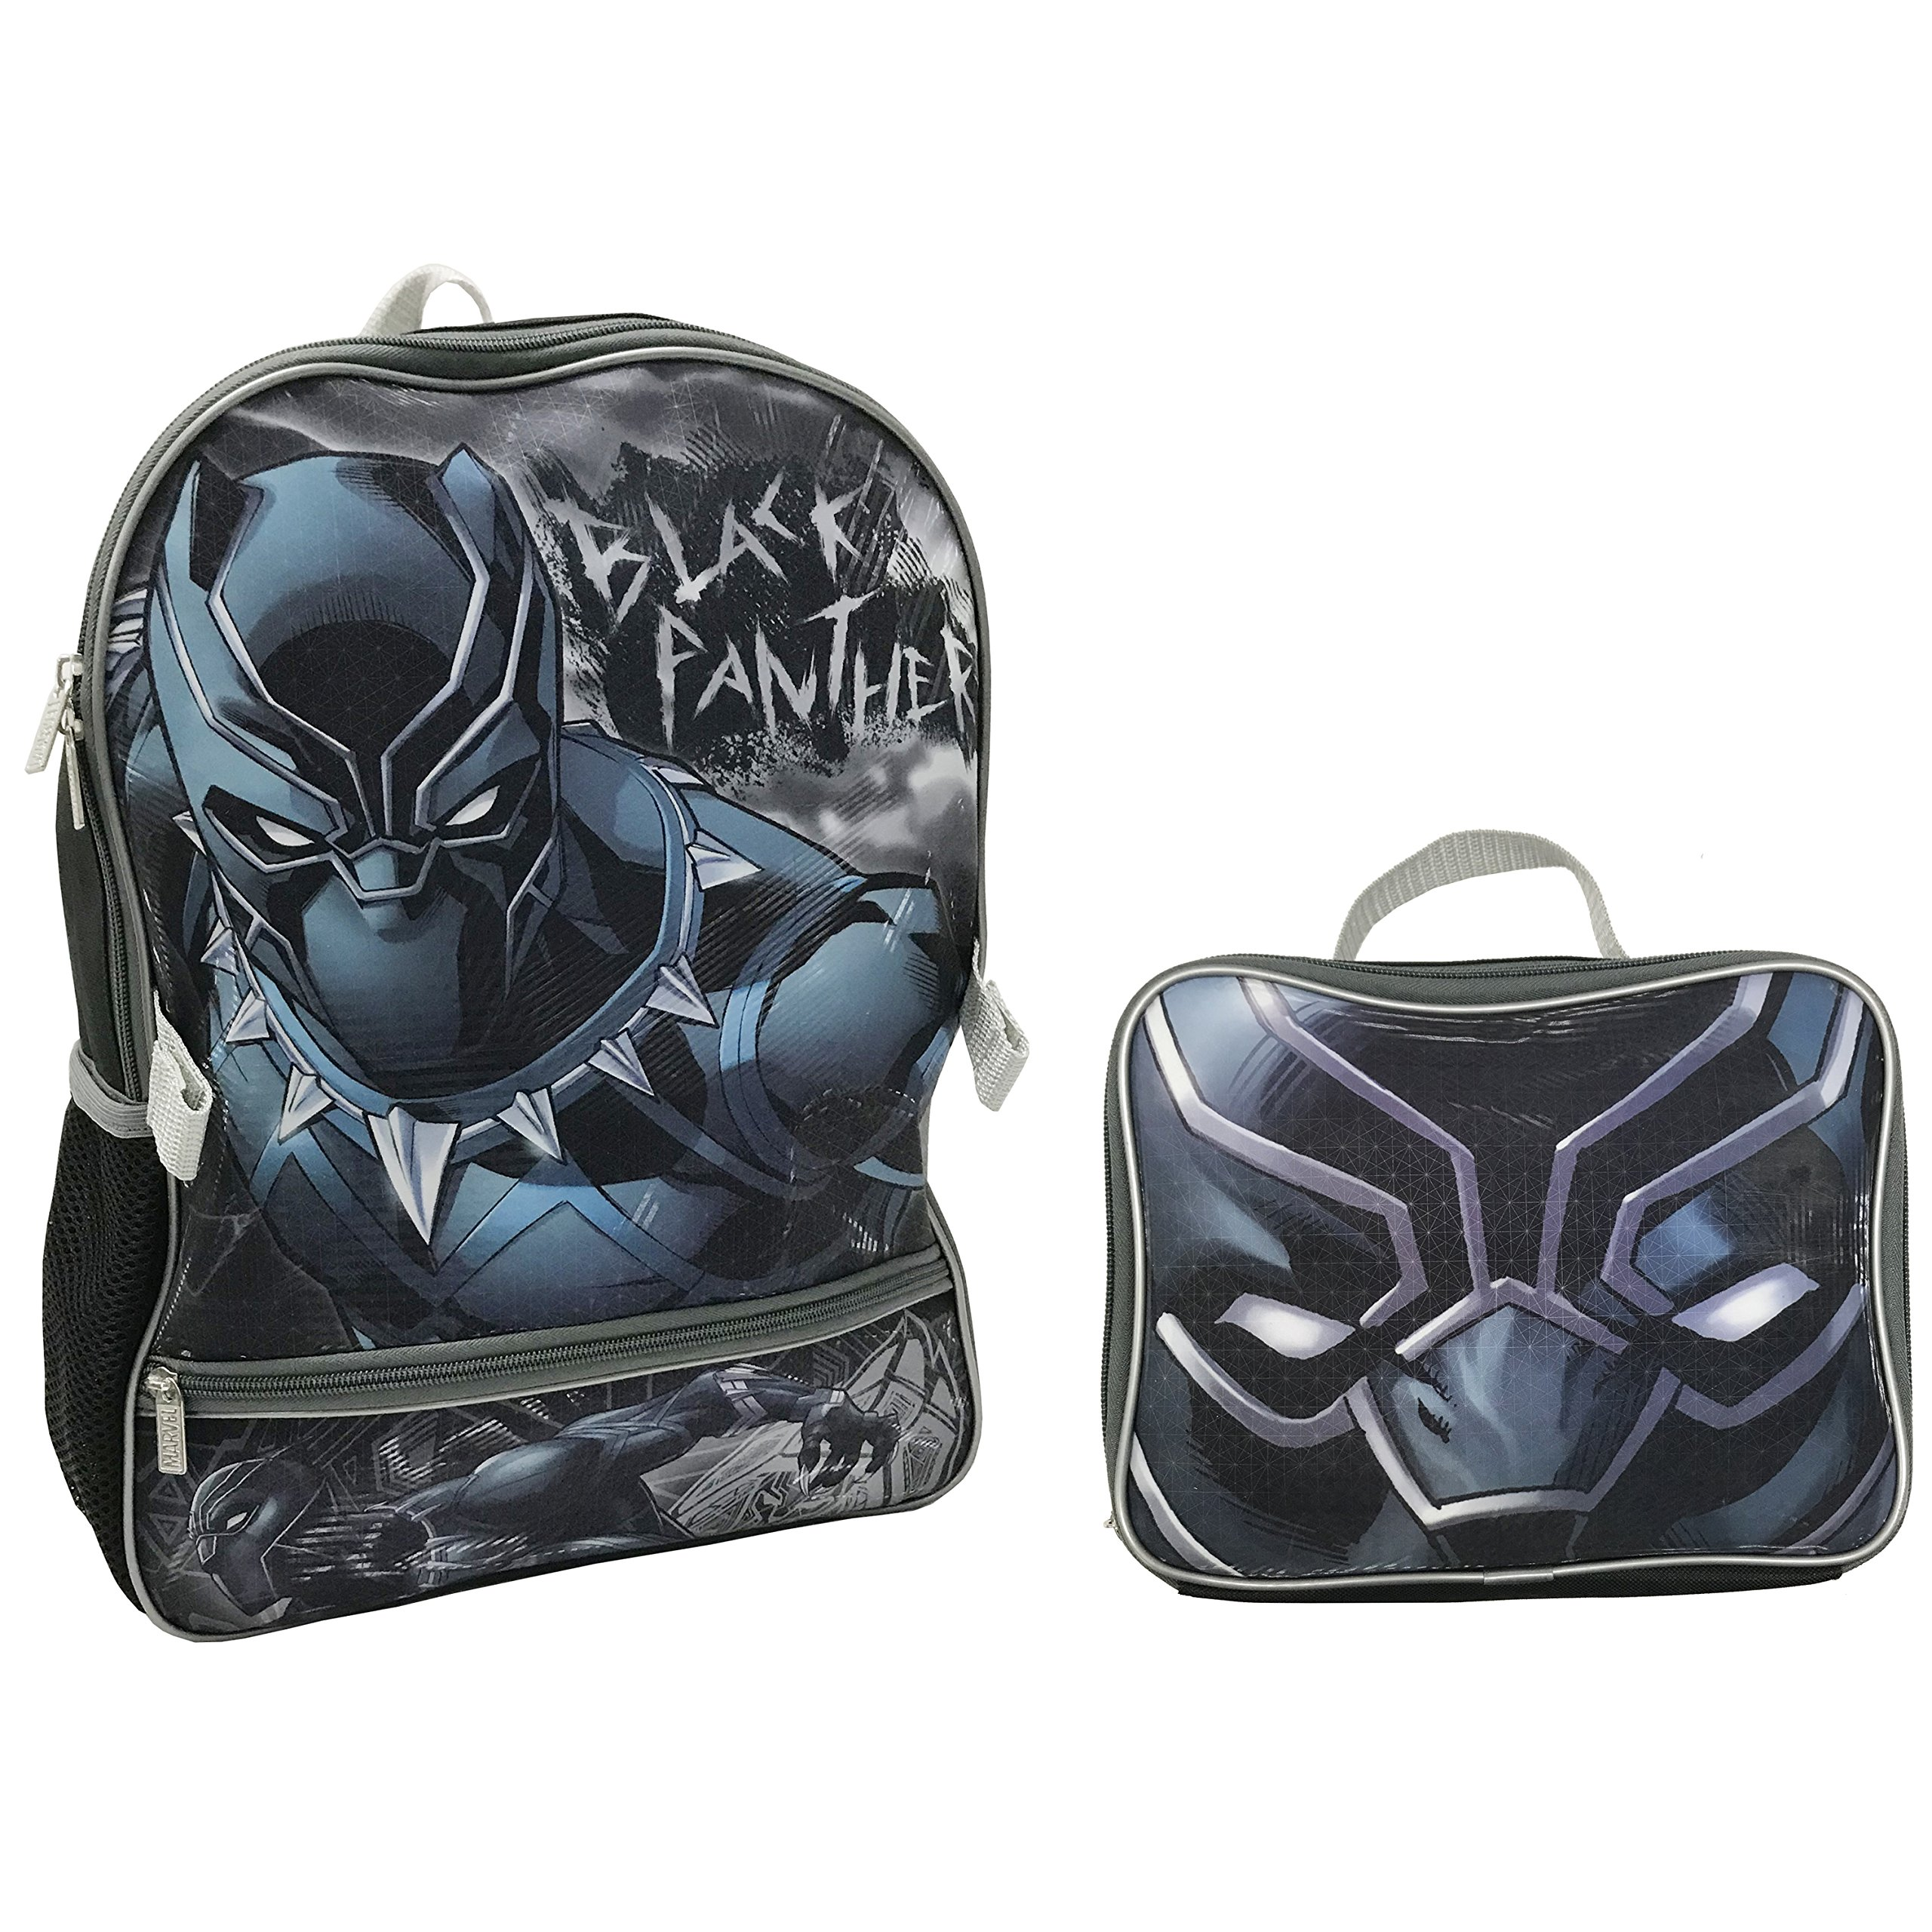 Marvel Boys' Panther Lunch Kit Backpack, Black, One Size